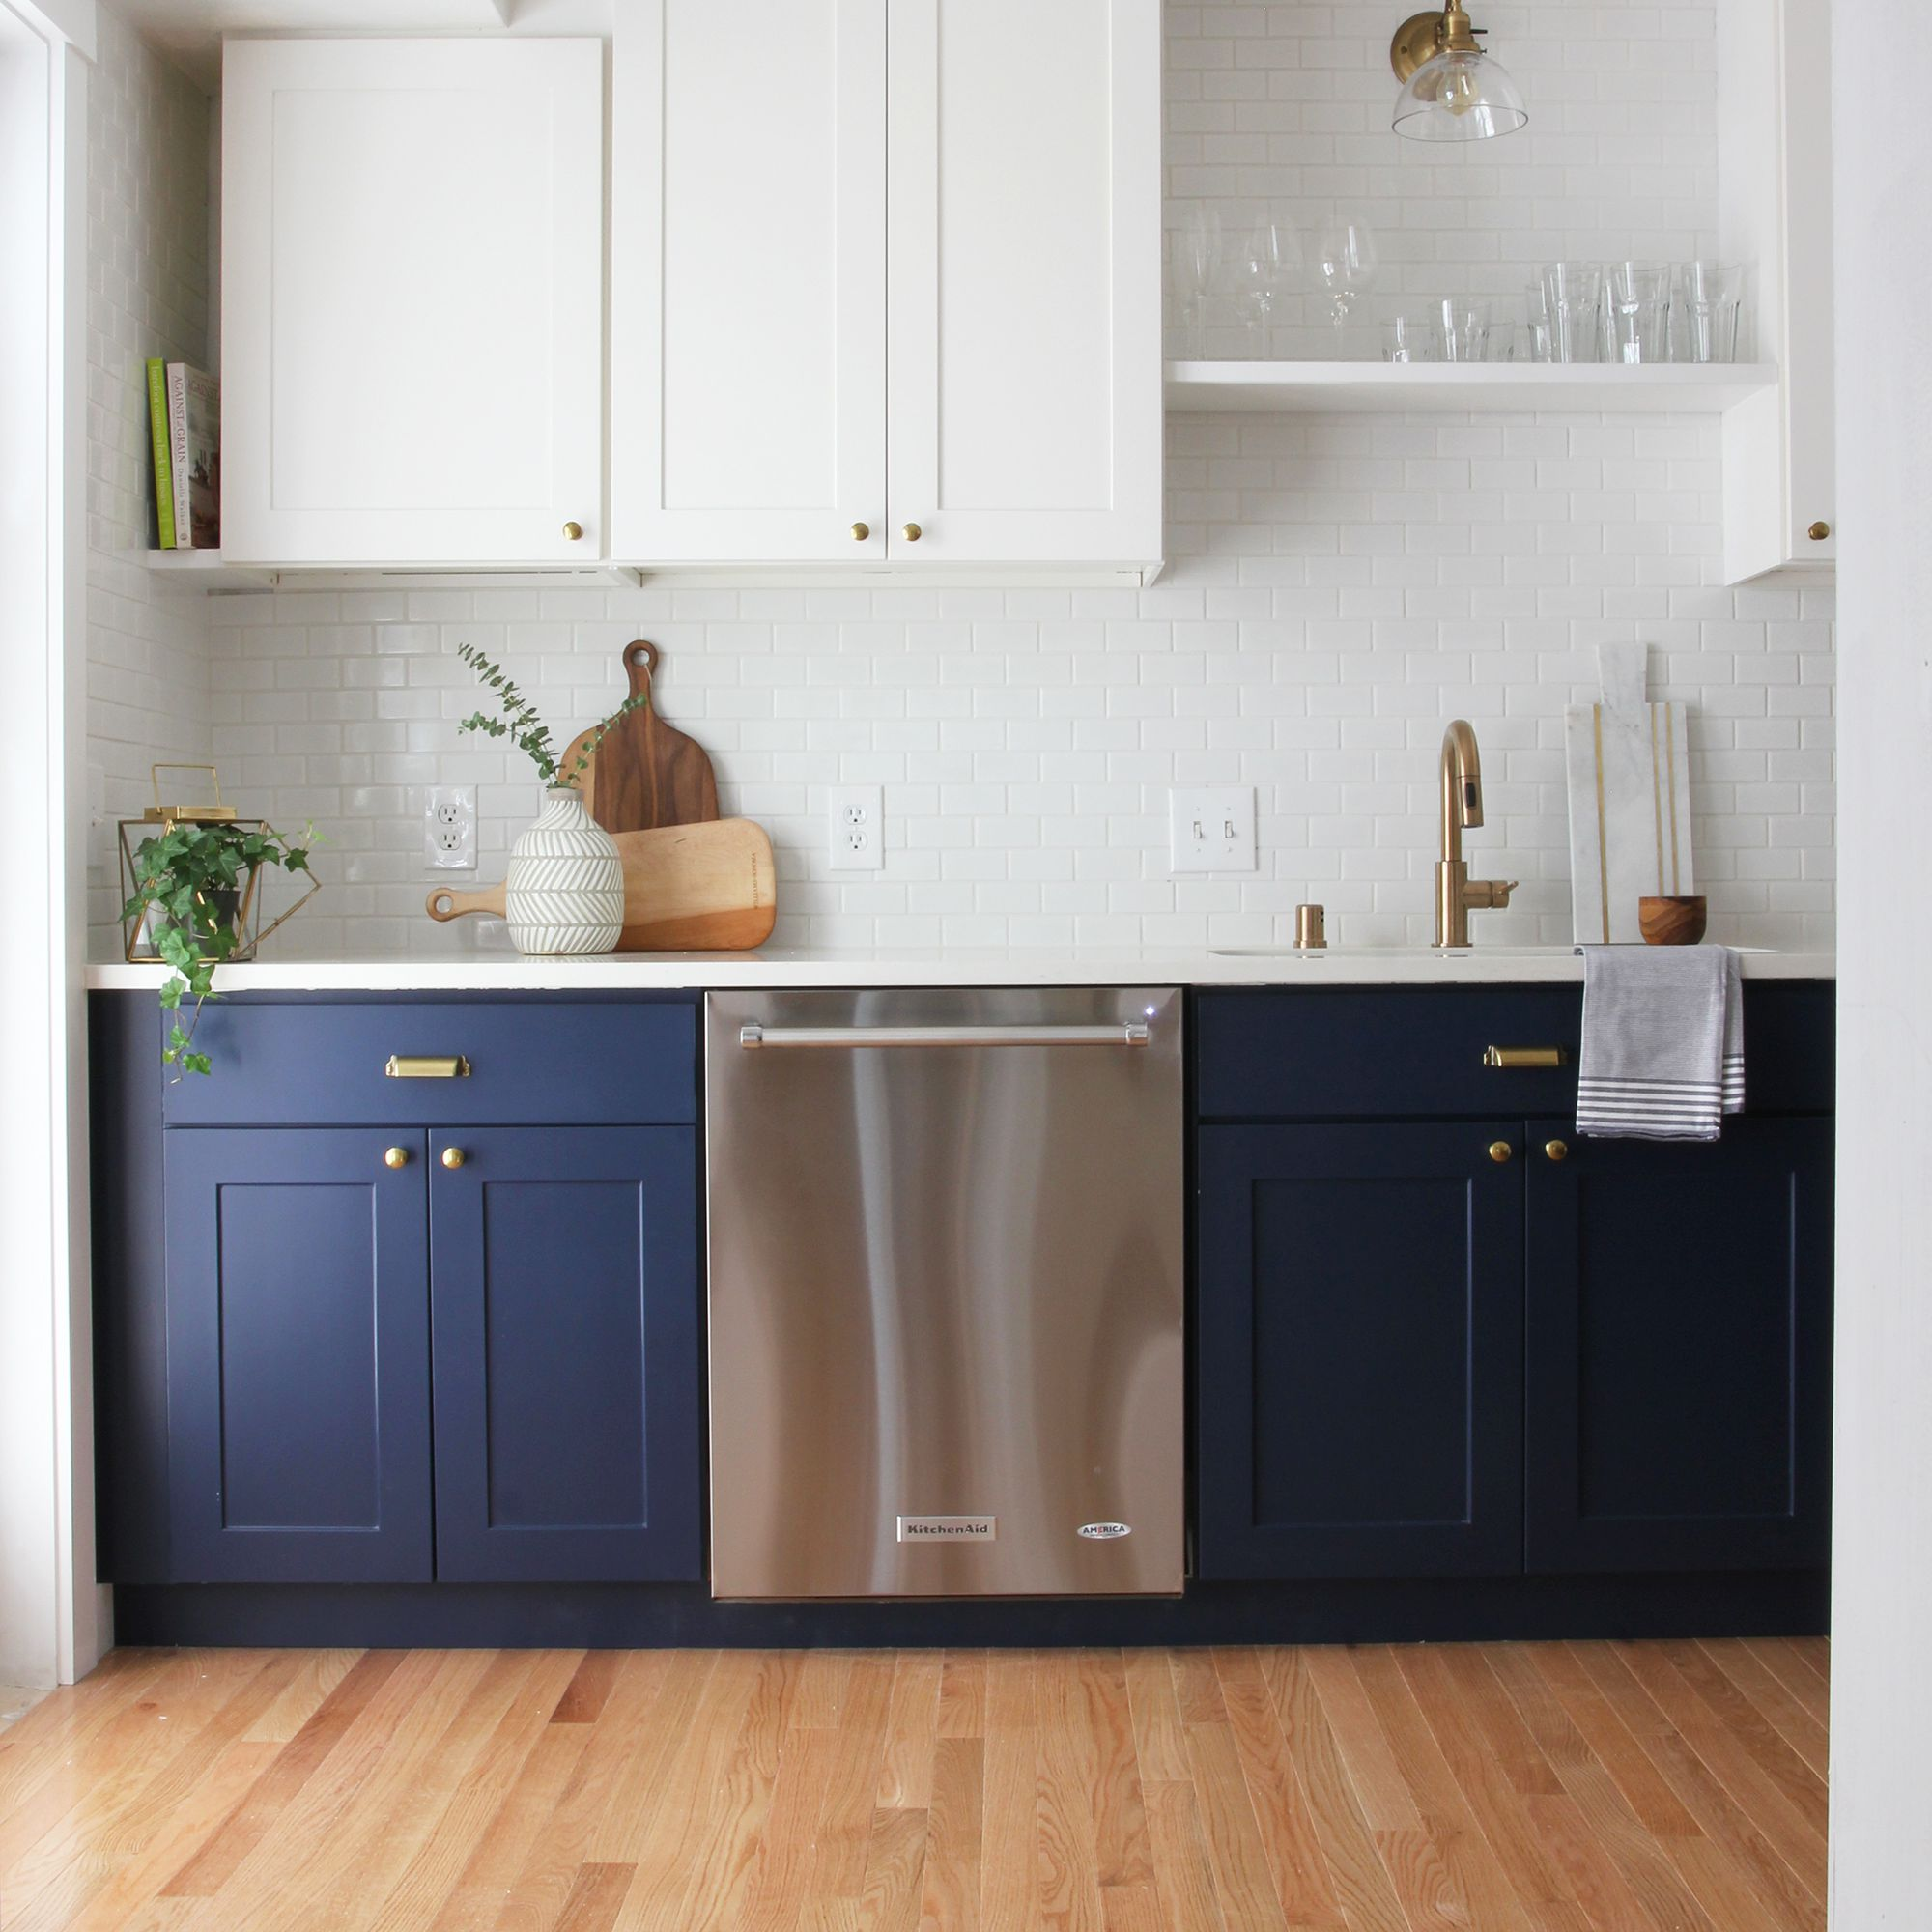 12 Navy Blue Paint Options For Kitchen Cabinets